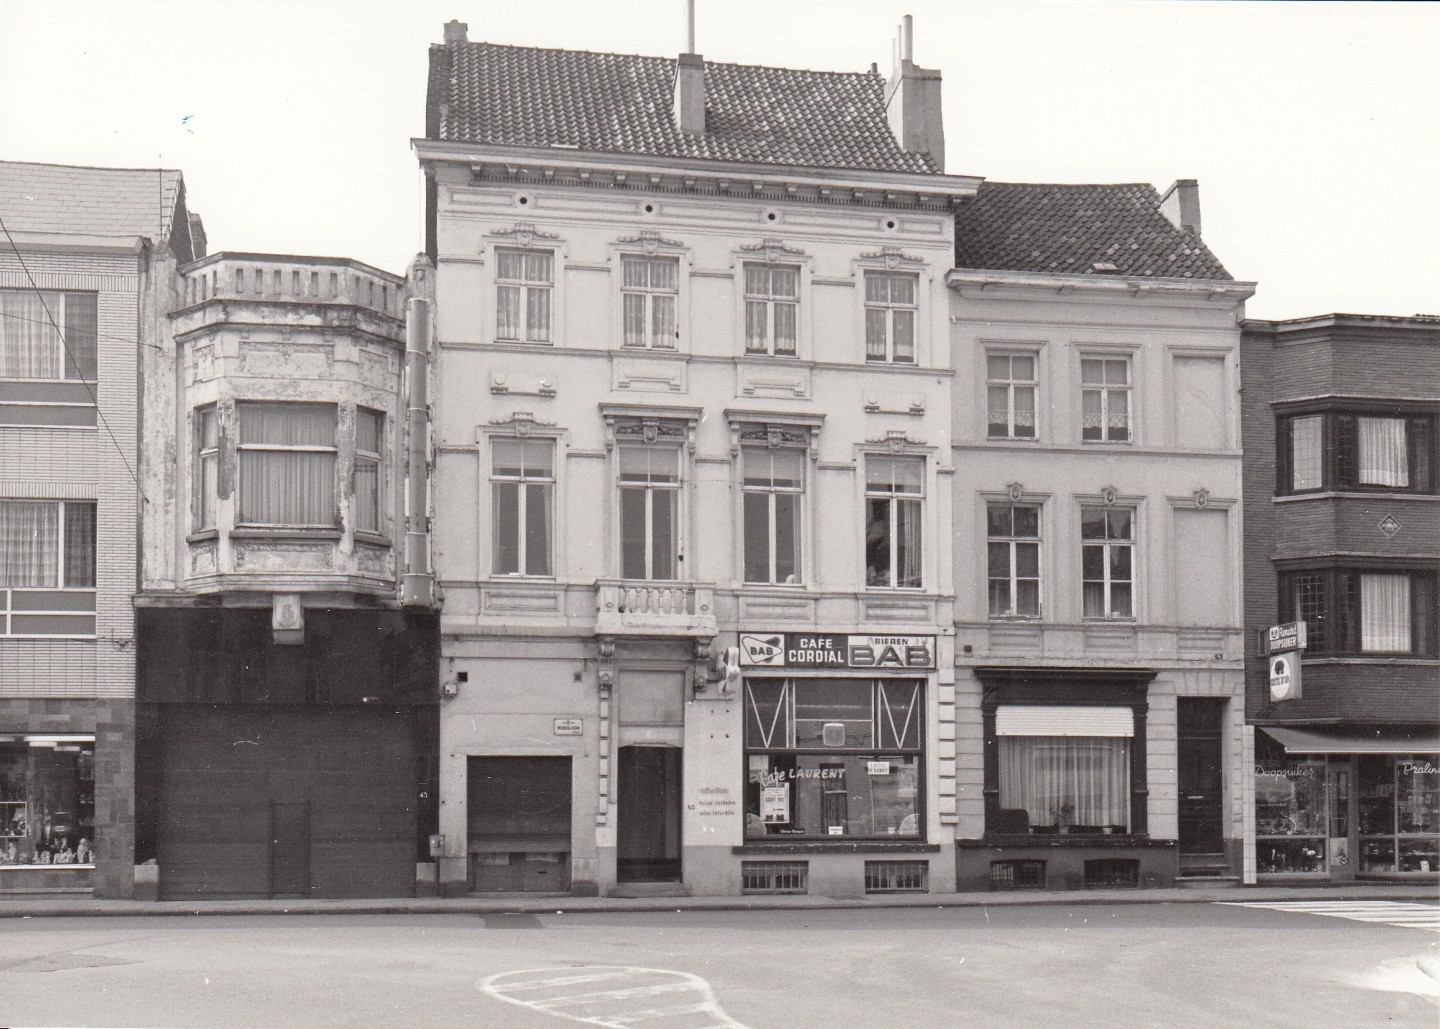 Wondelgemstraat 1978 - pic inventaris (3)